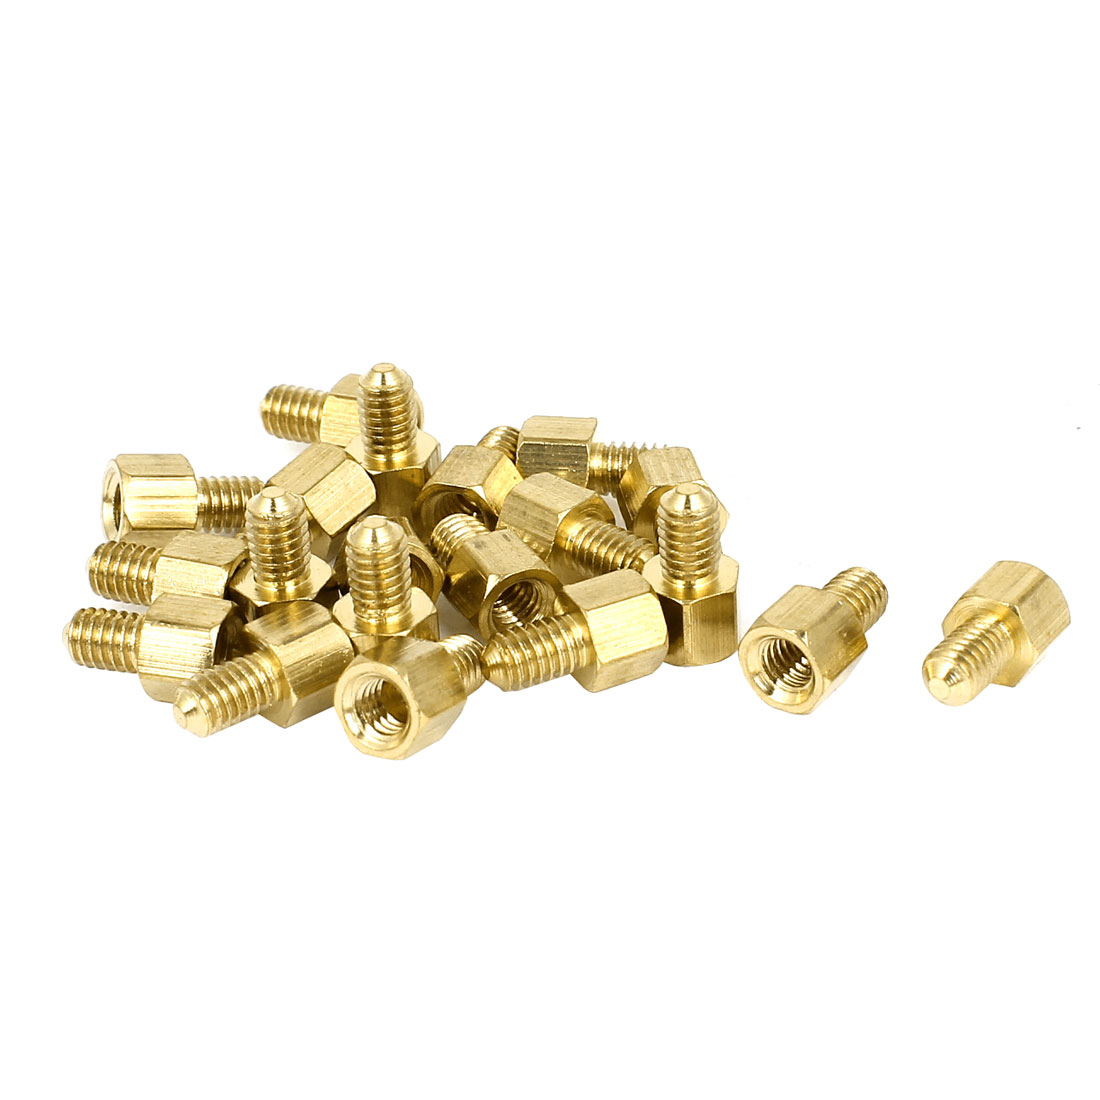 20pcs M4x5mm+6mm Hexagon Female Male Spacer Nut Screw Standoffs for PCB Mounting